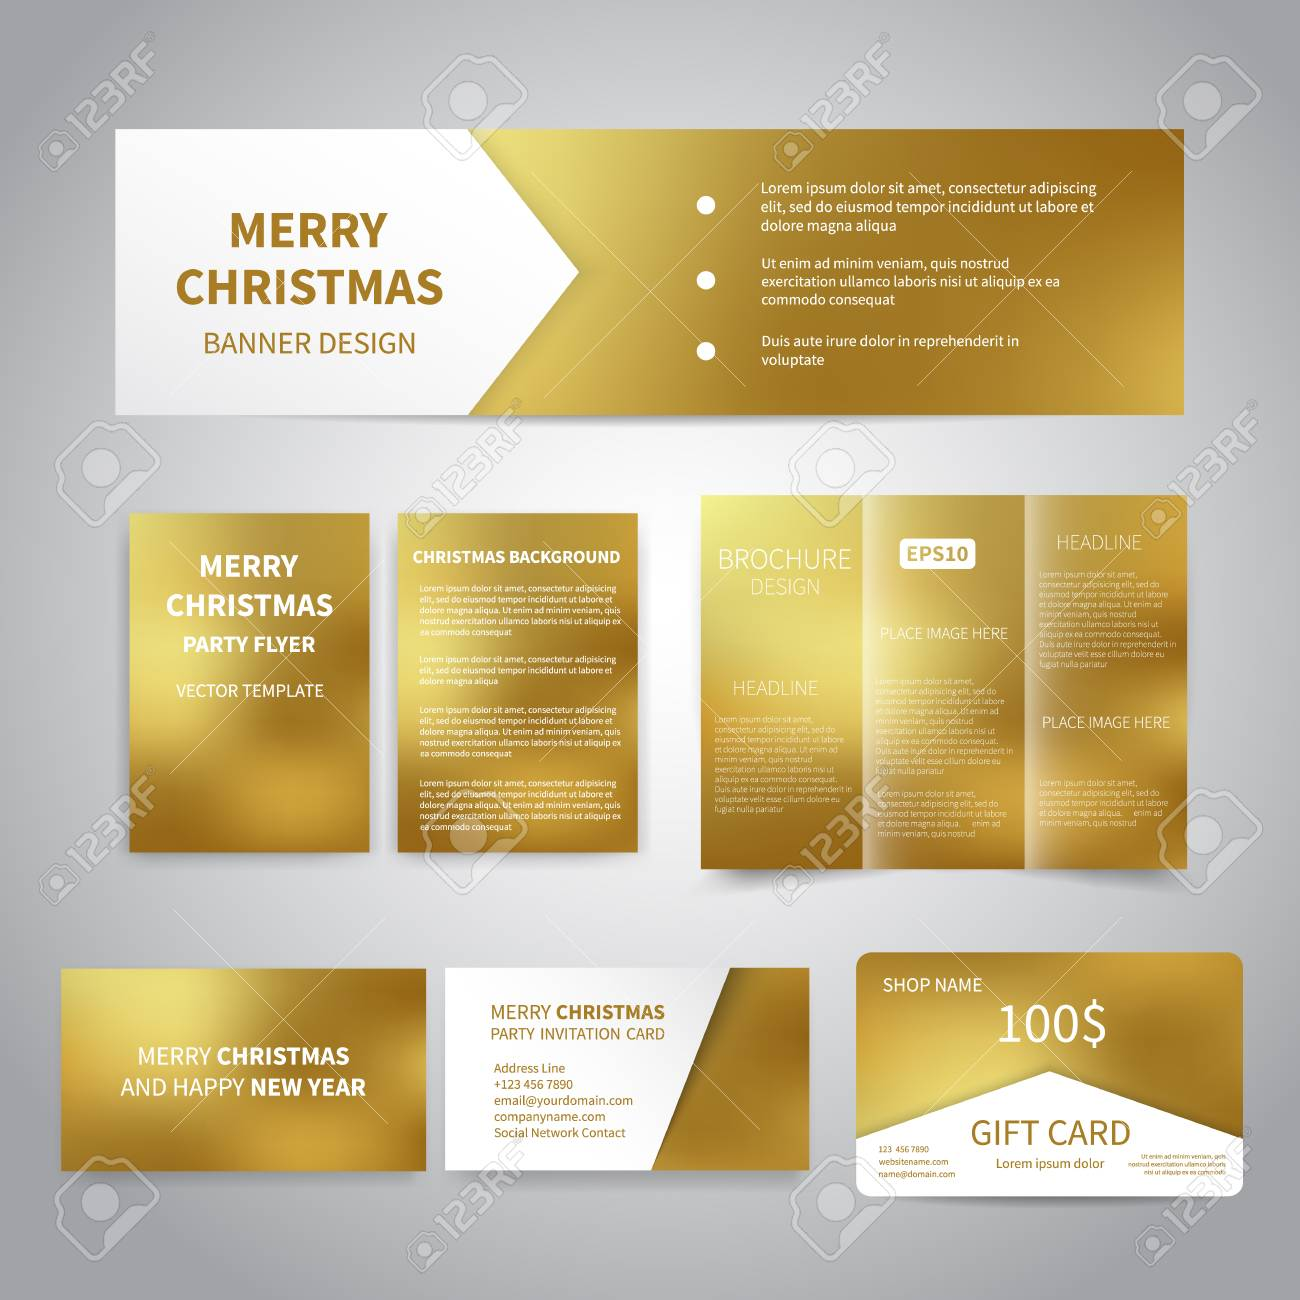 merry christmas banner flyers brochure cards gift card design